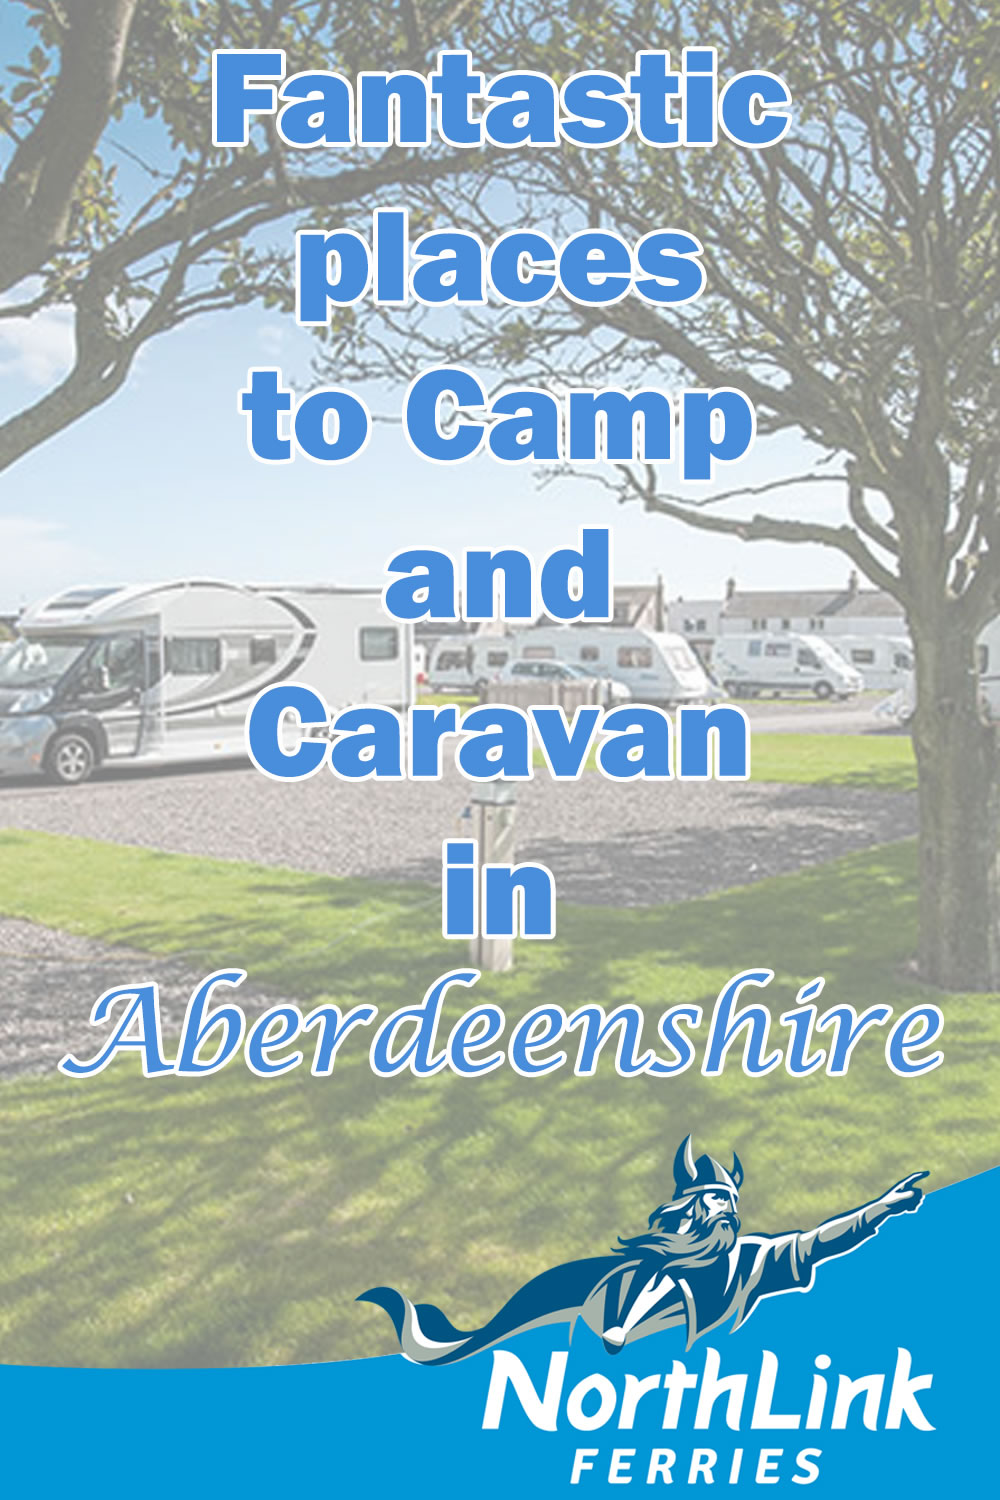 Fantastic places to Camp and Caravan in Aberdeenshire